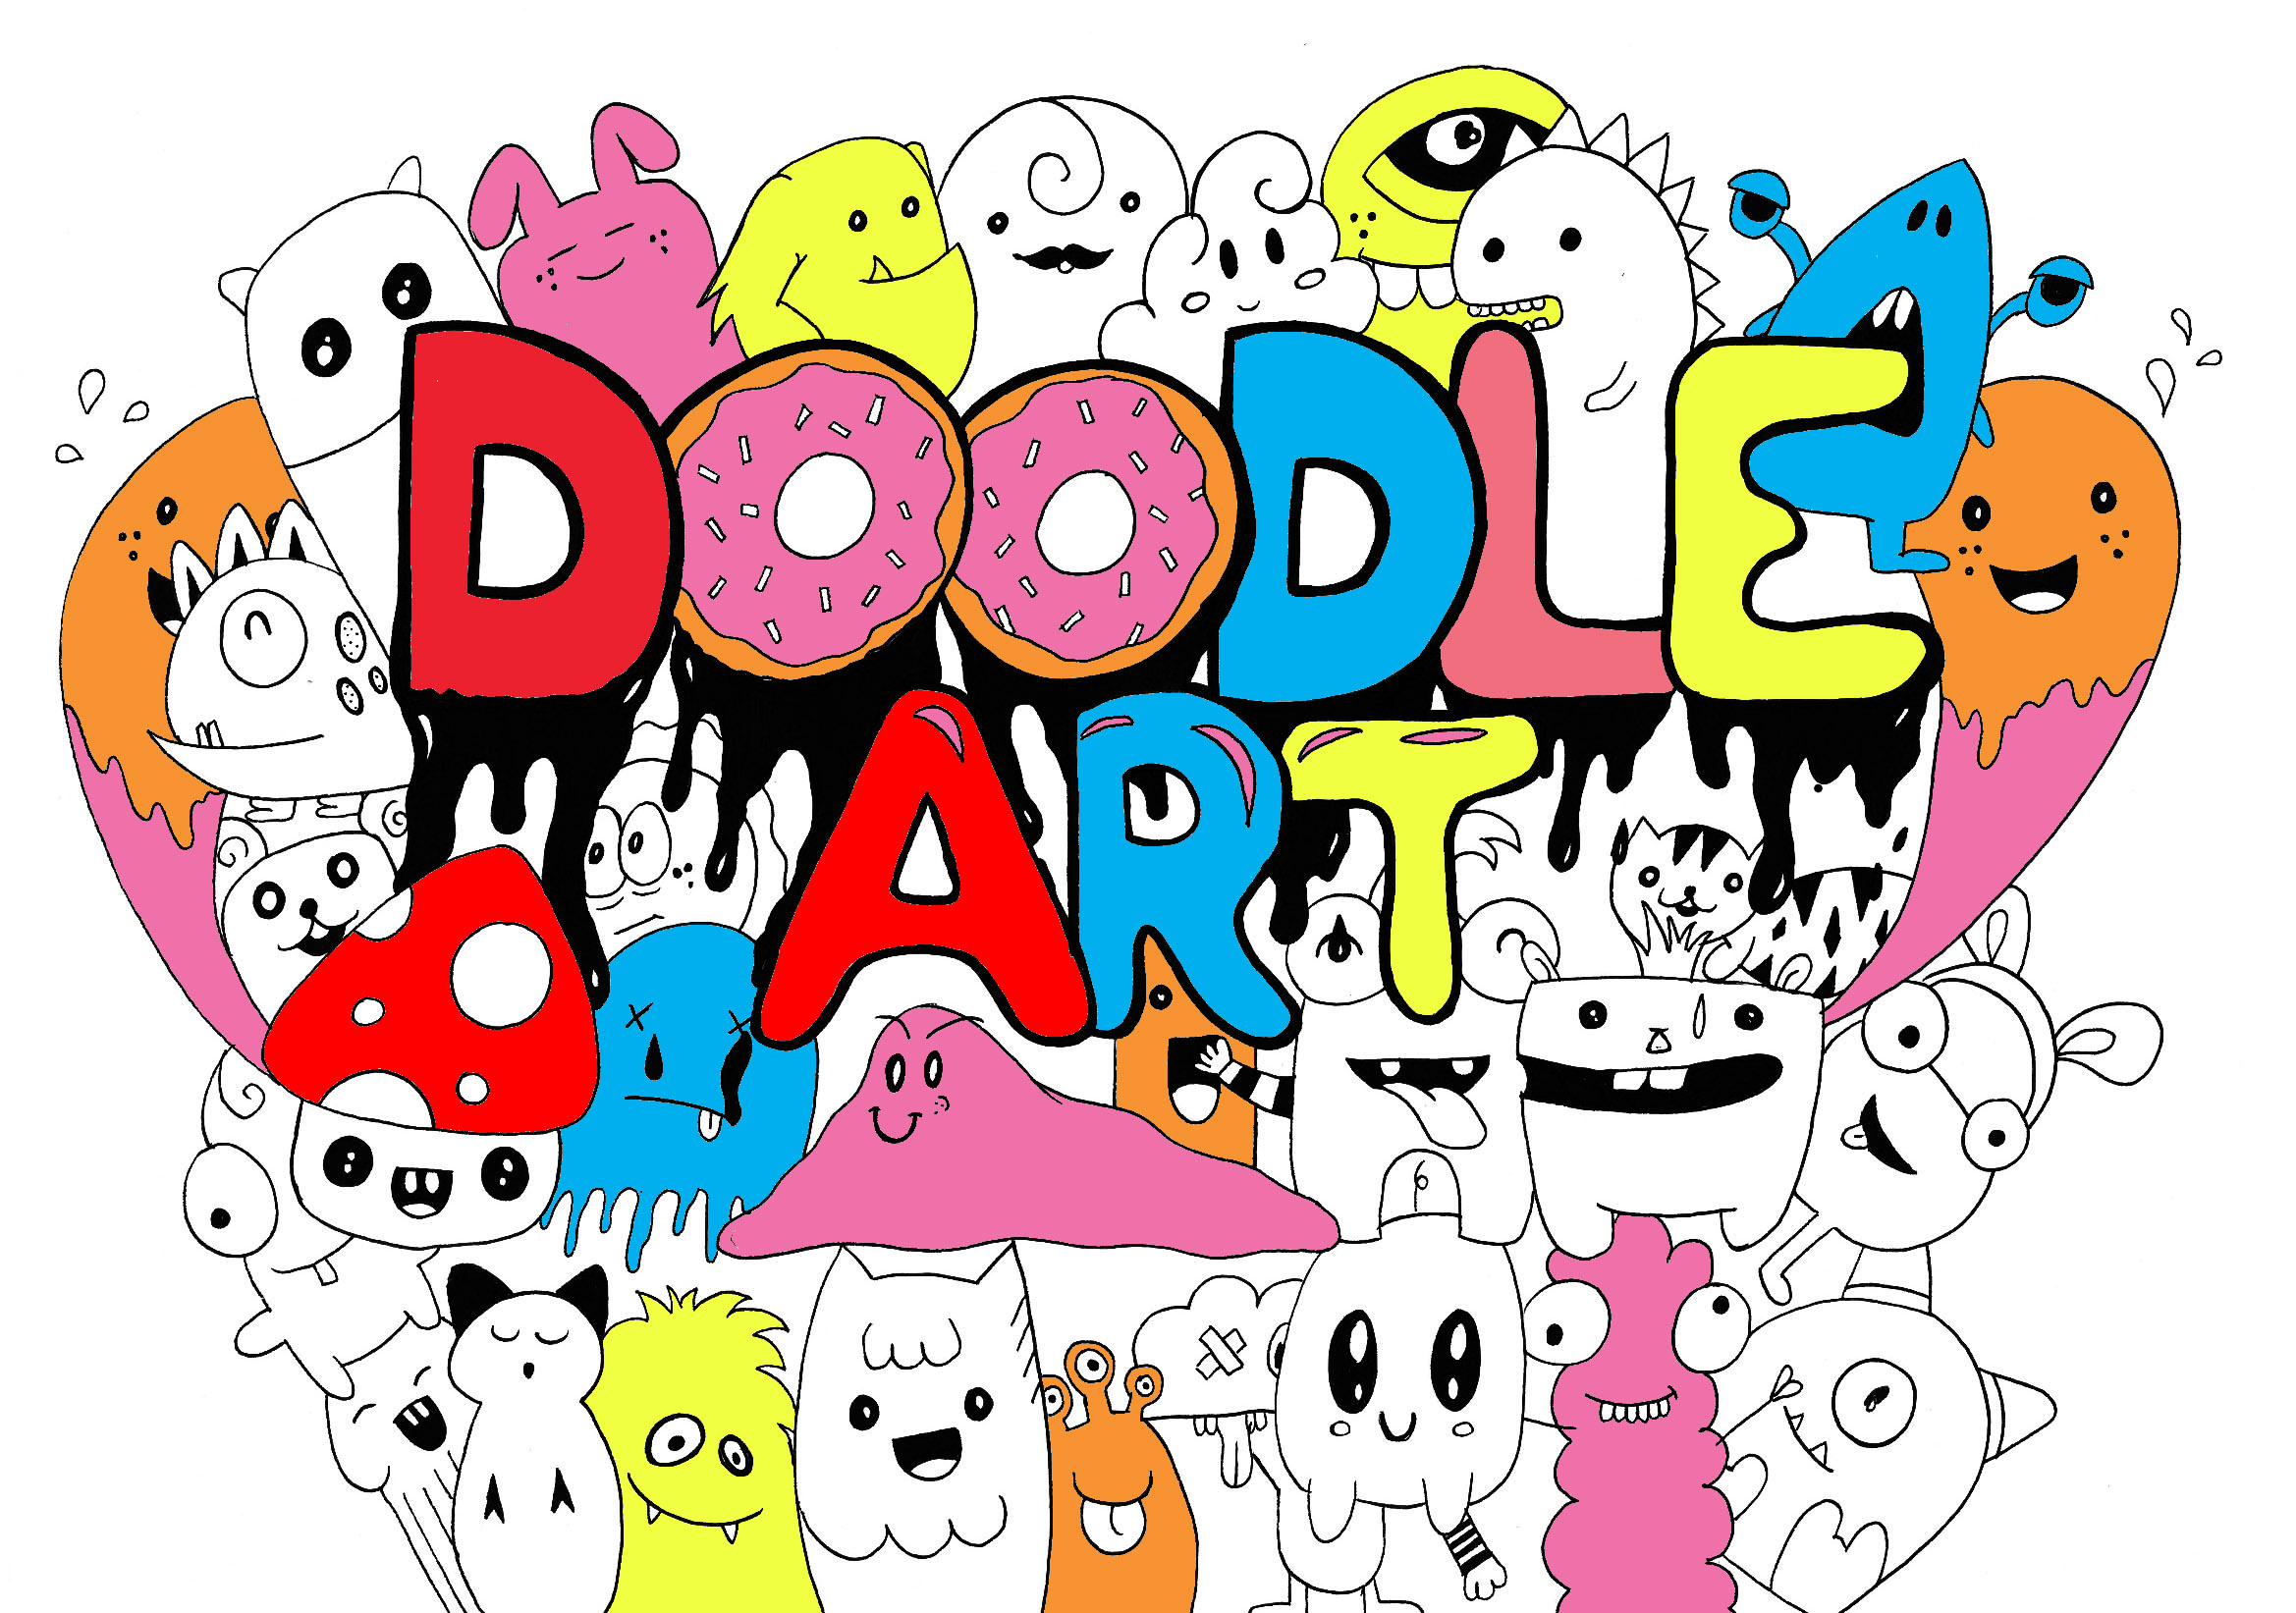 Doodling / Doodle art - Coloring pages for adults